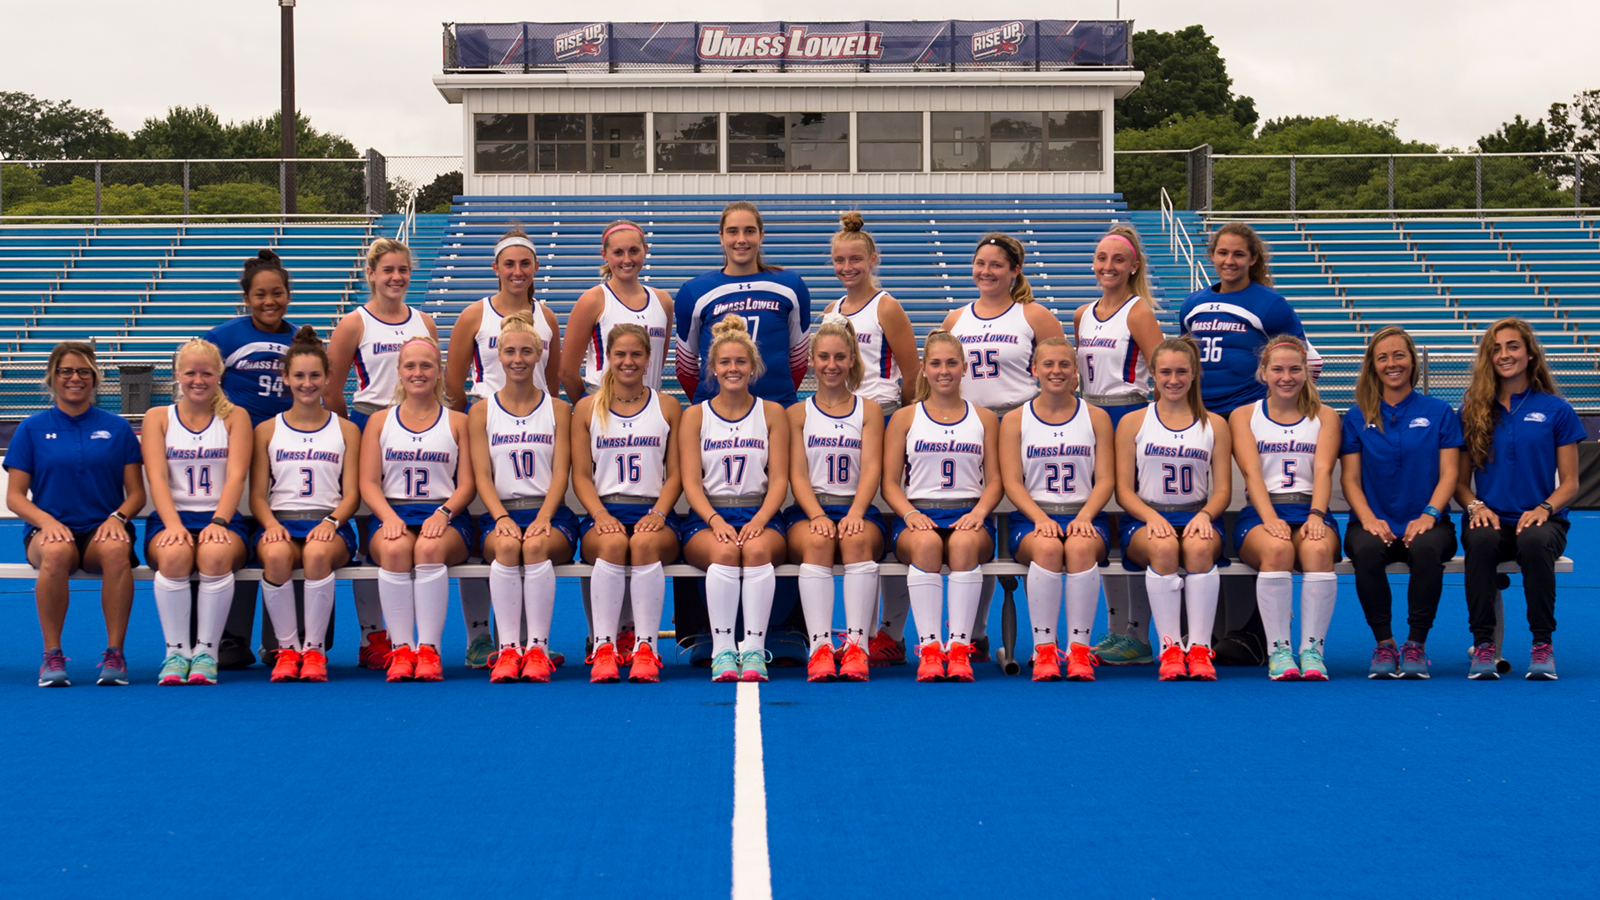 University Of Massachusetts Lowell >> 2018 Field Hockey Roster Umass Lowell Athletics